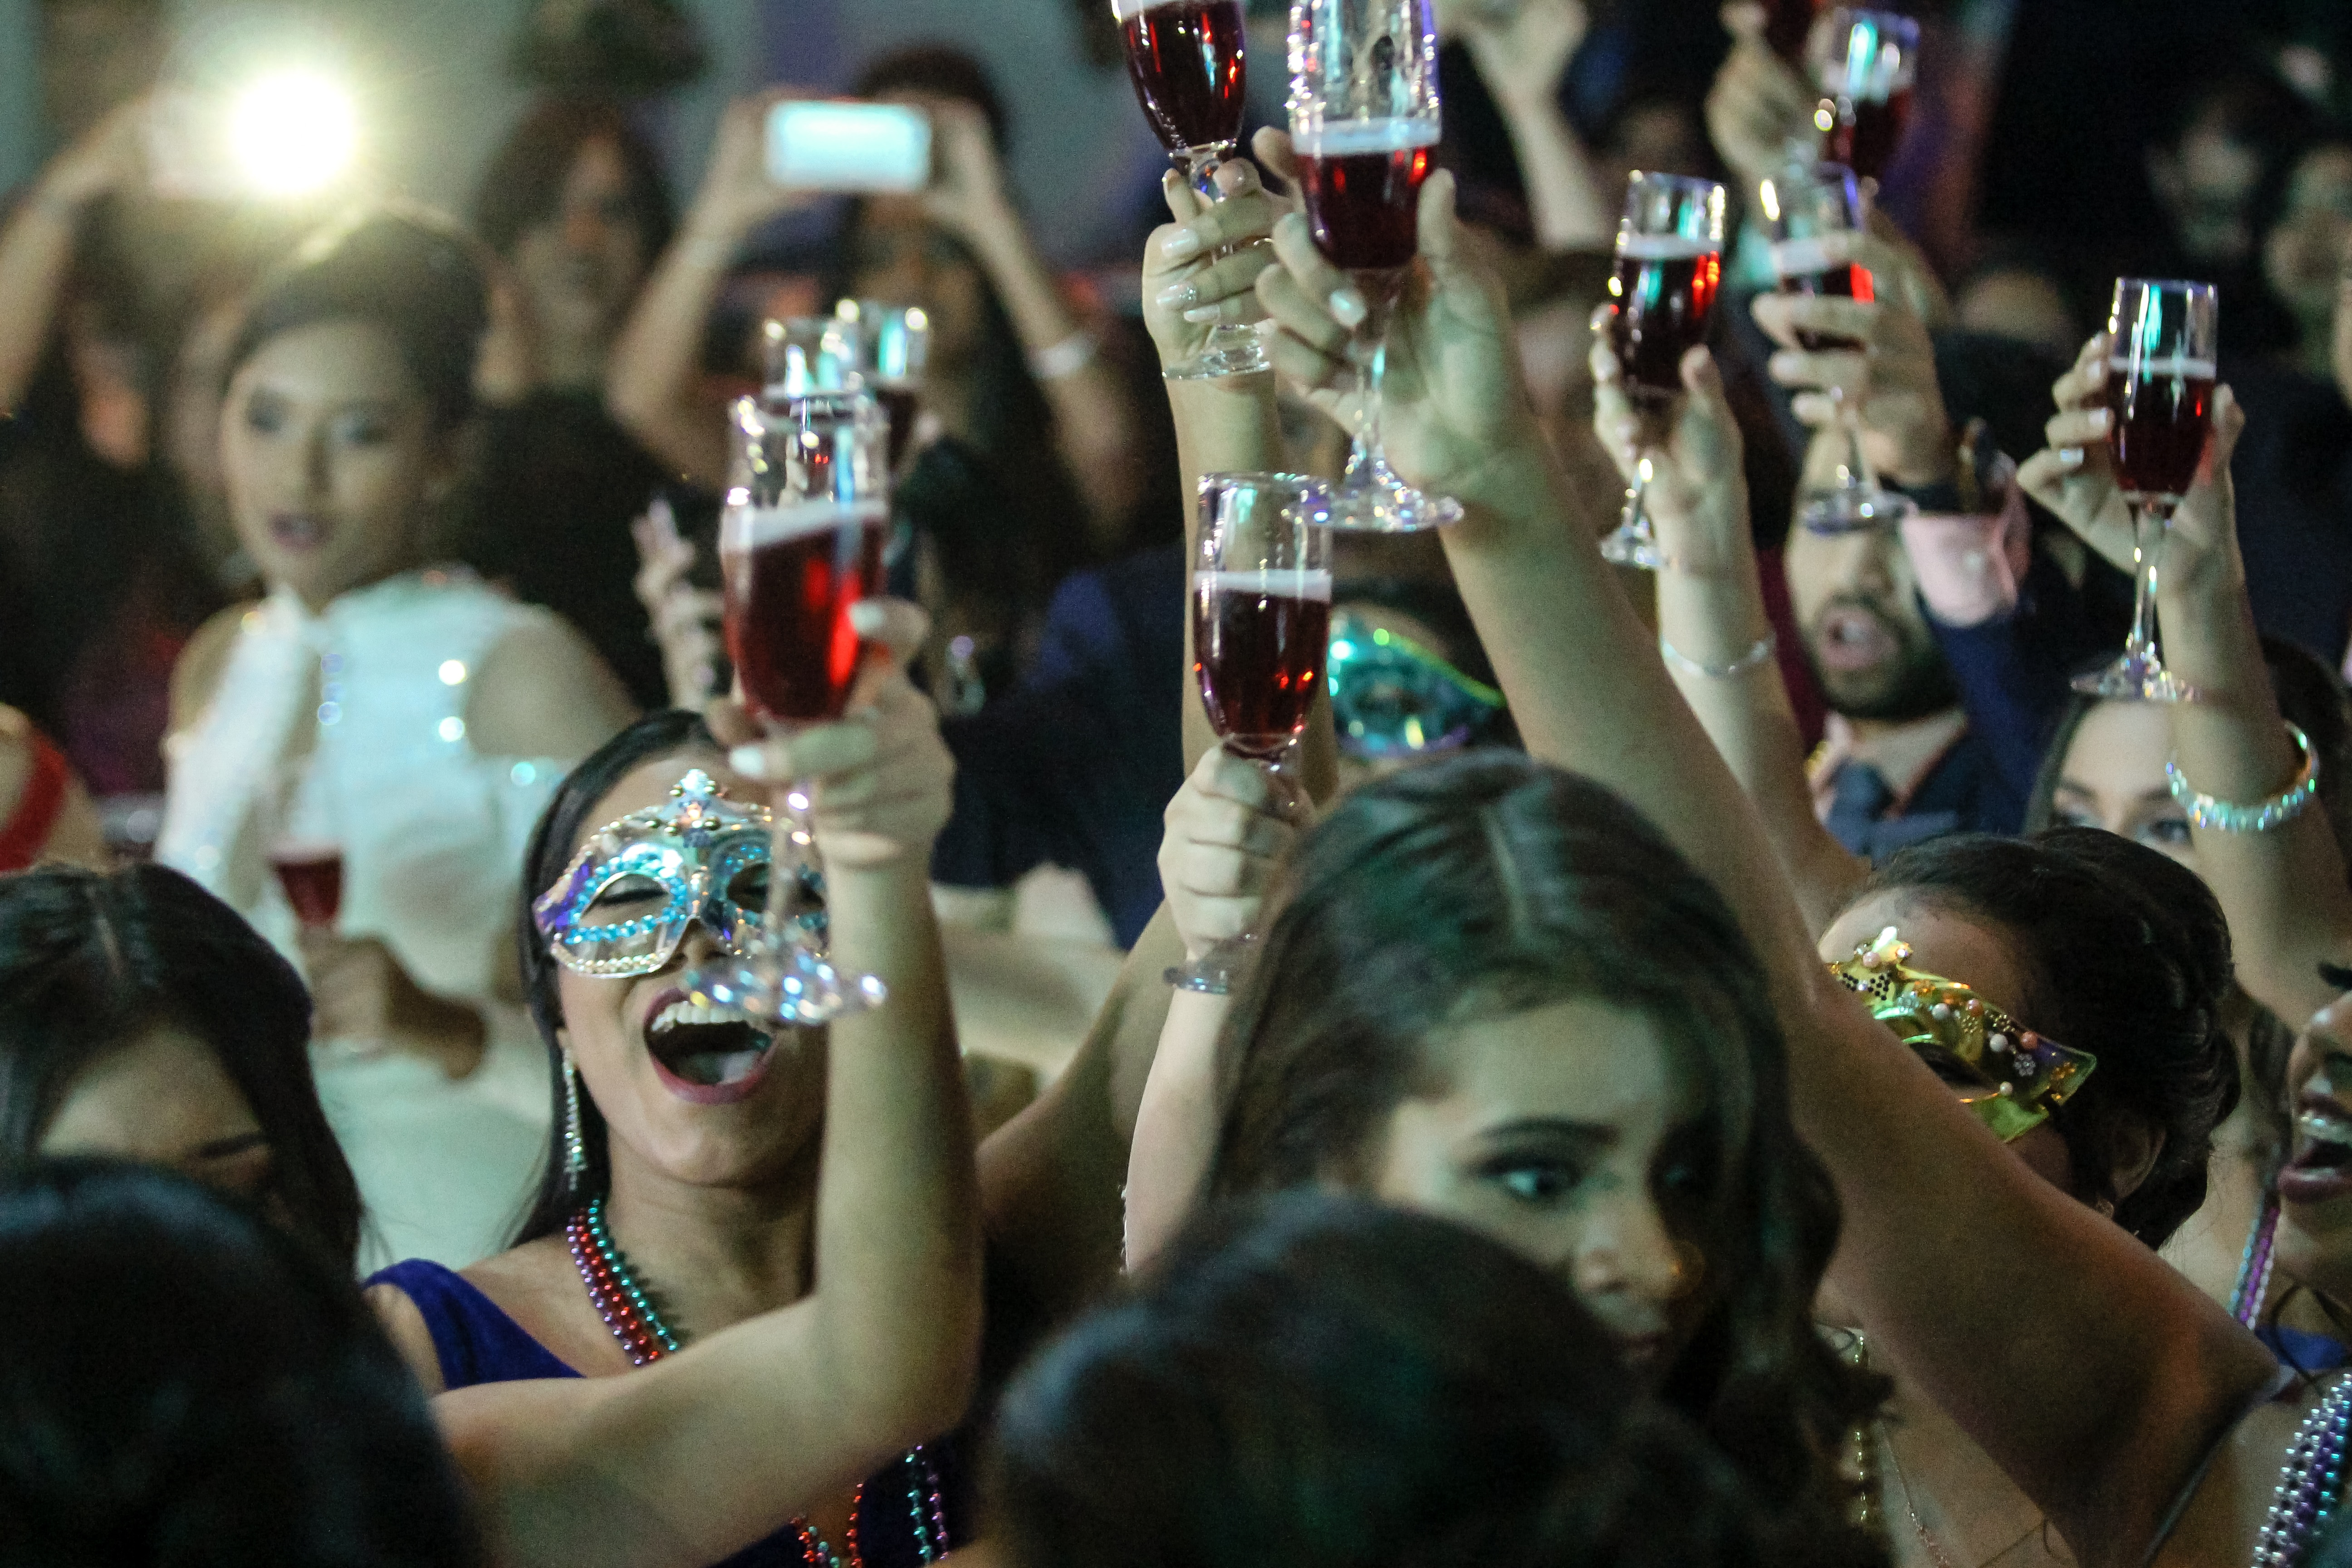 A group of women in party masks holding up glasses of pink champagne